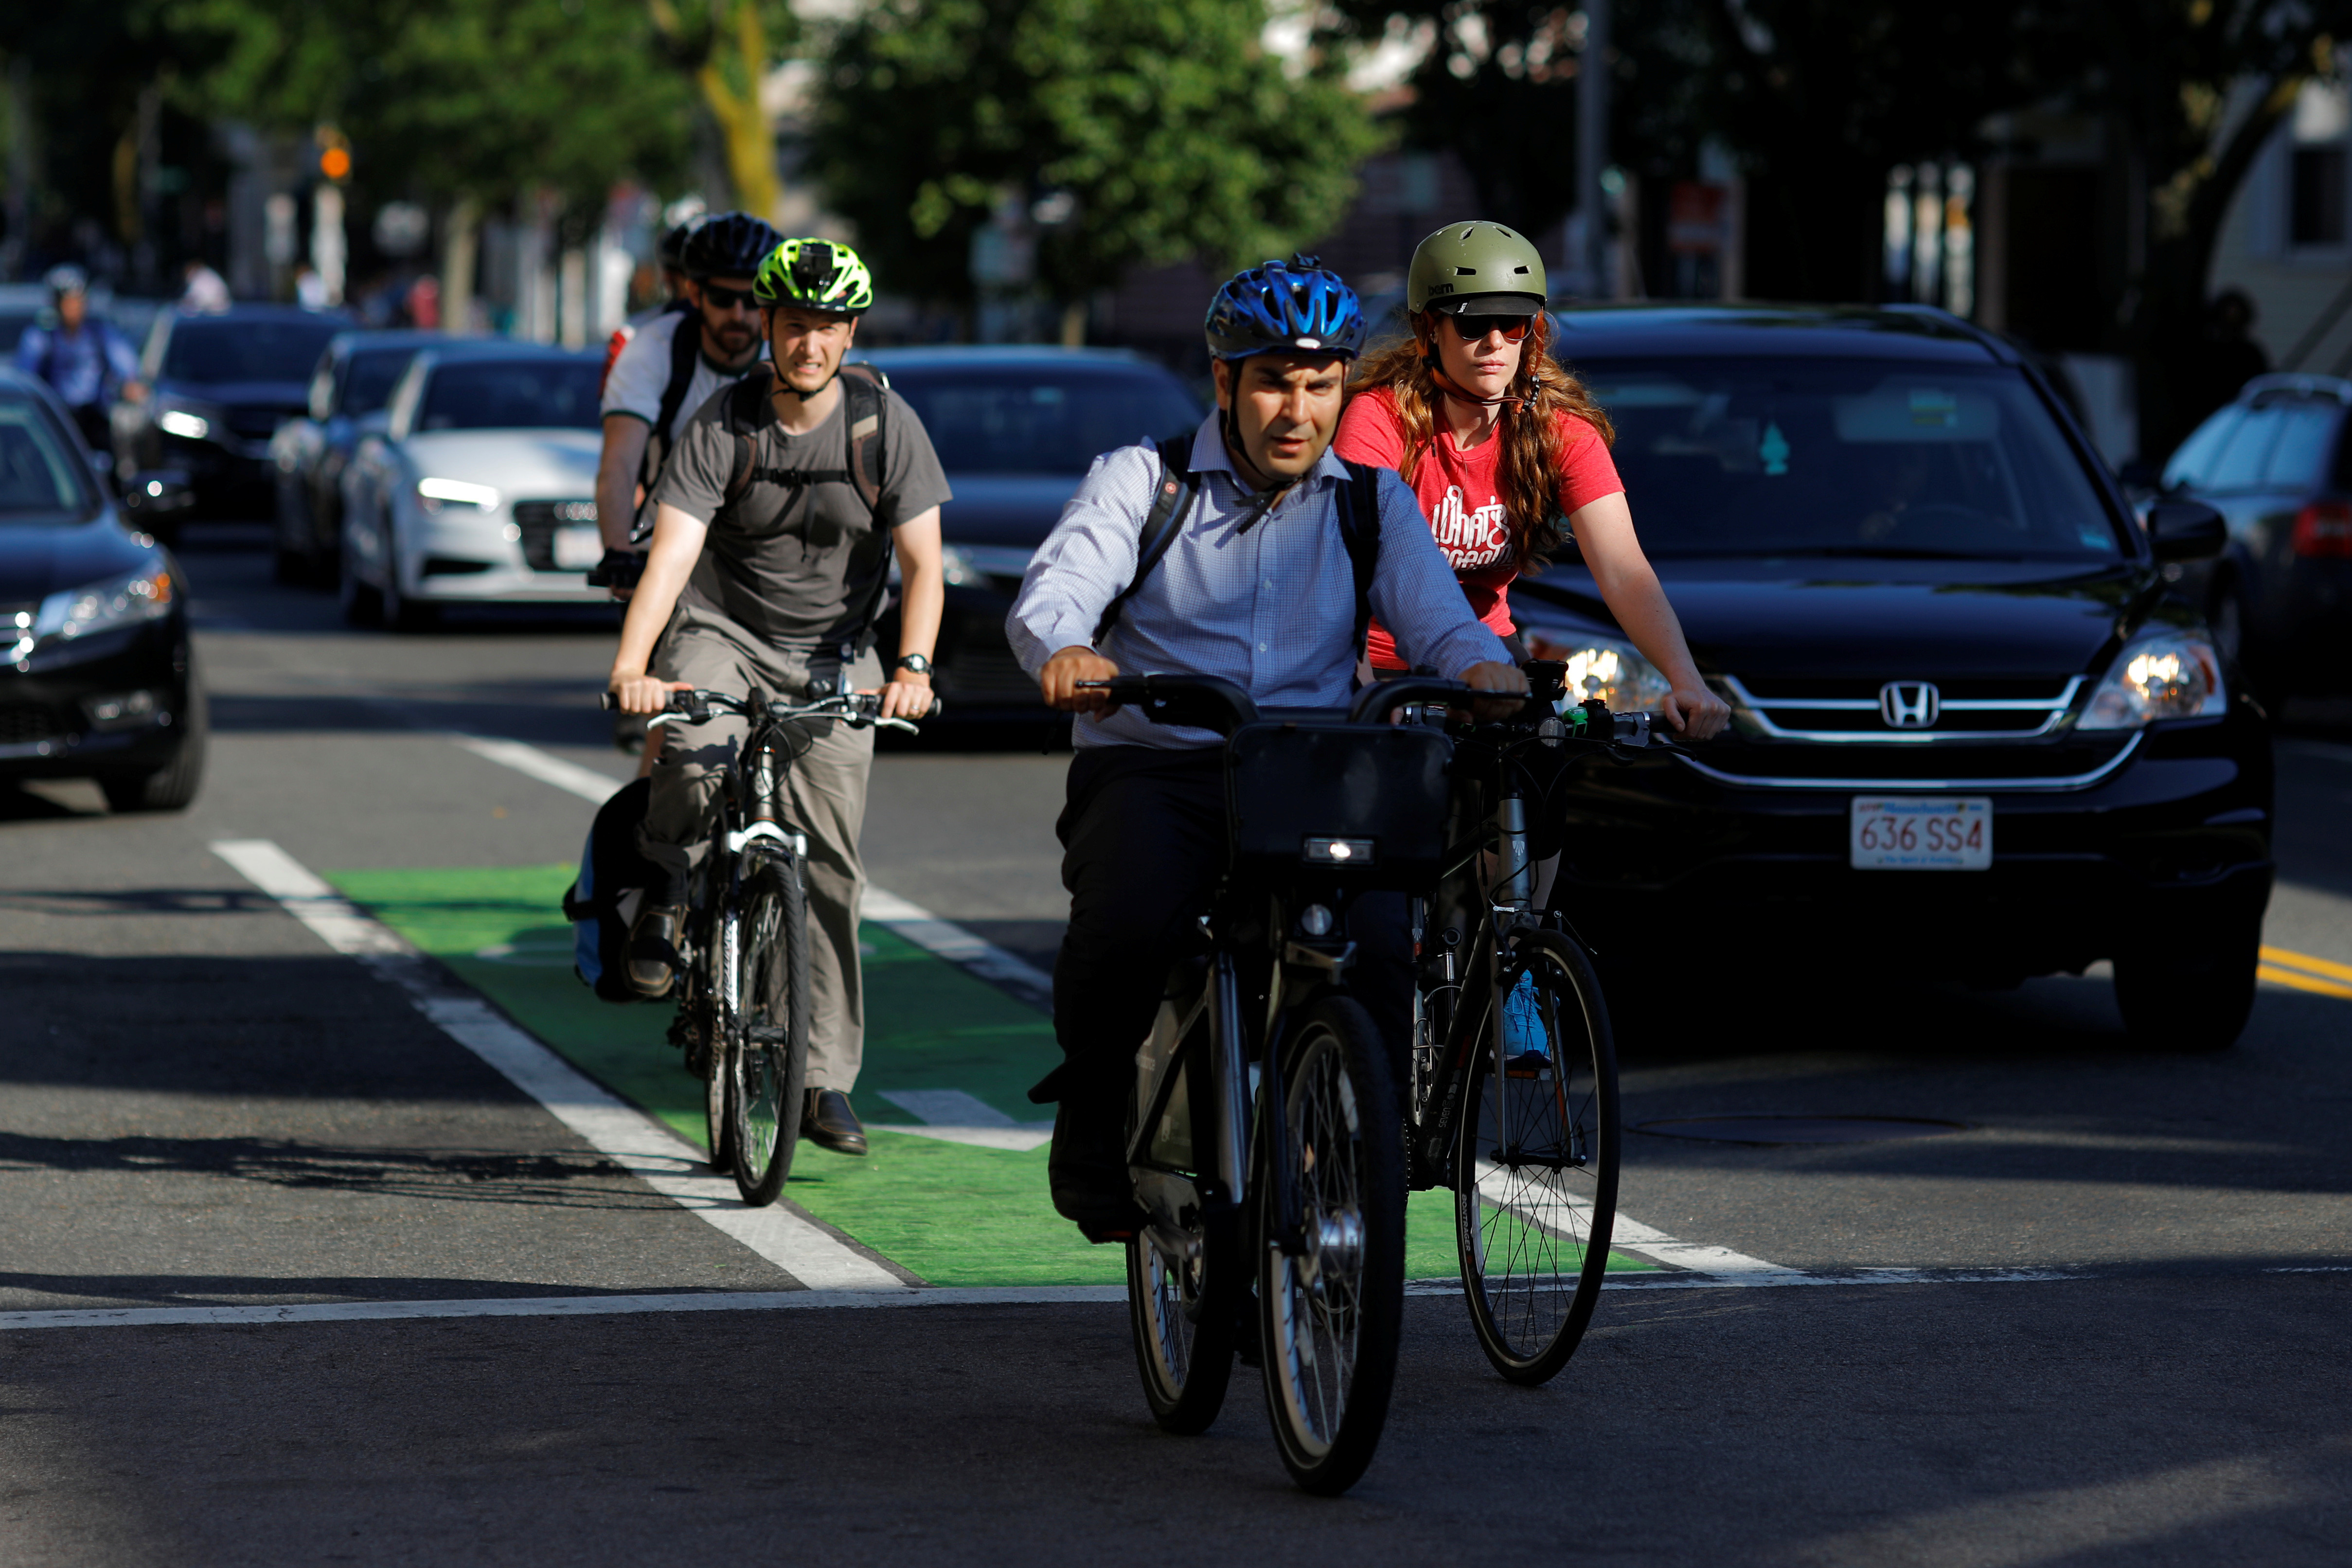 Cyclists and cars wait at a red light during the evening commute in Cambridge, Massachusetts, U.S., June 15, 2017.   REUTERS/Brian Snyder - RC150F6E5520